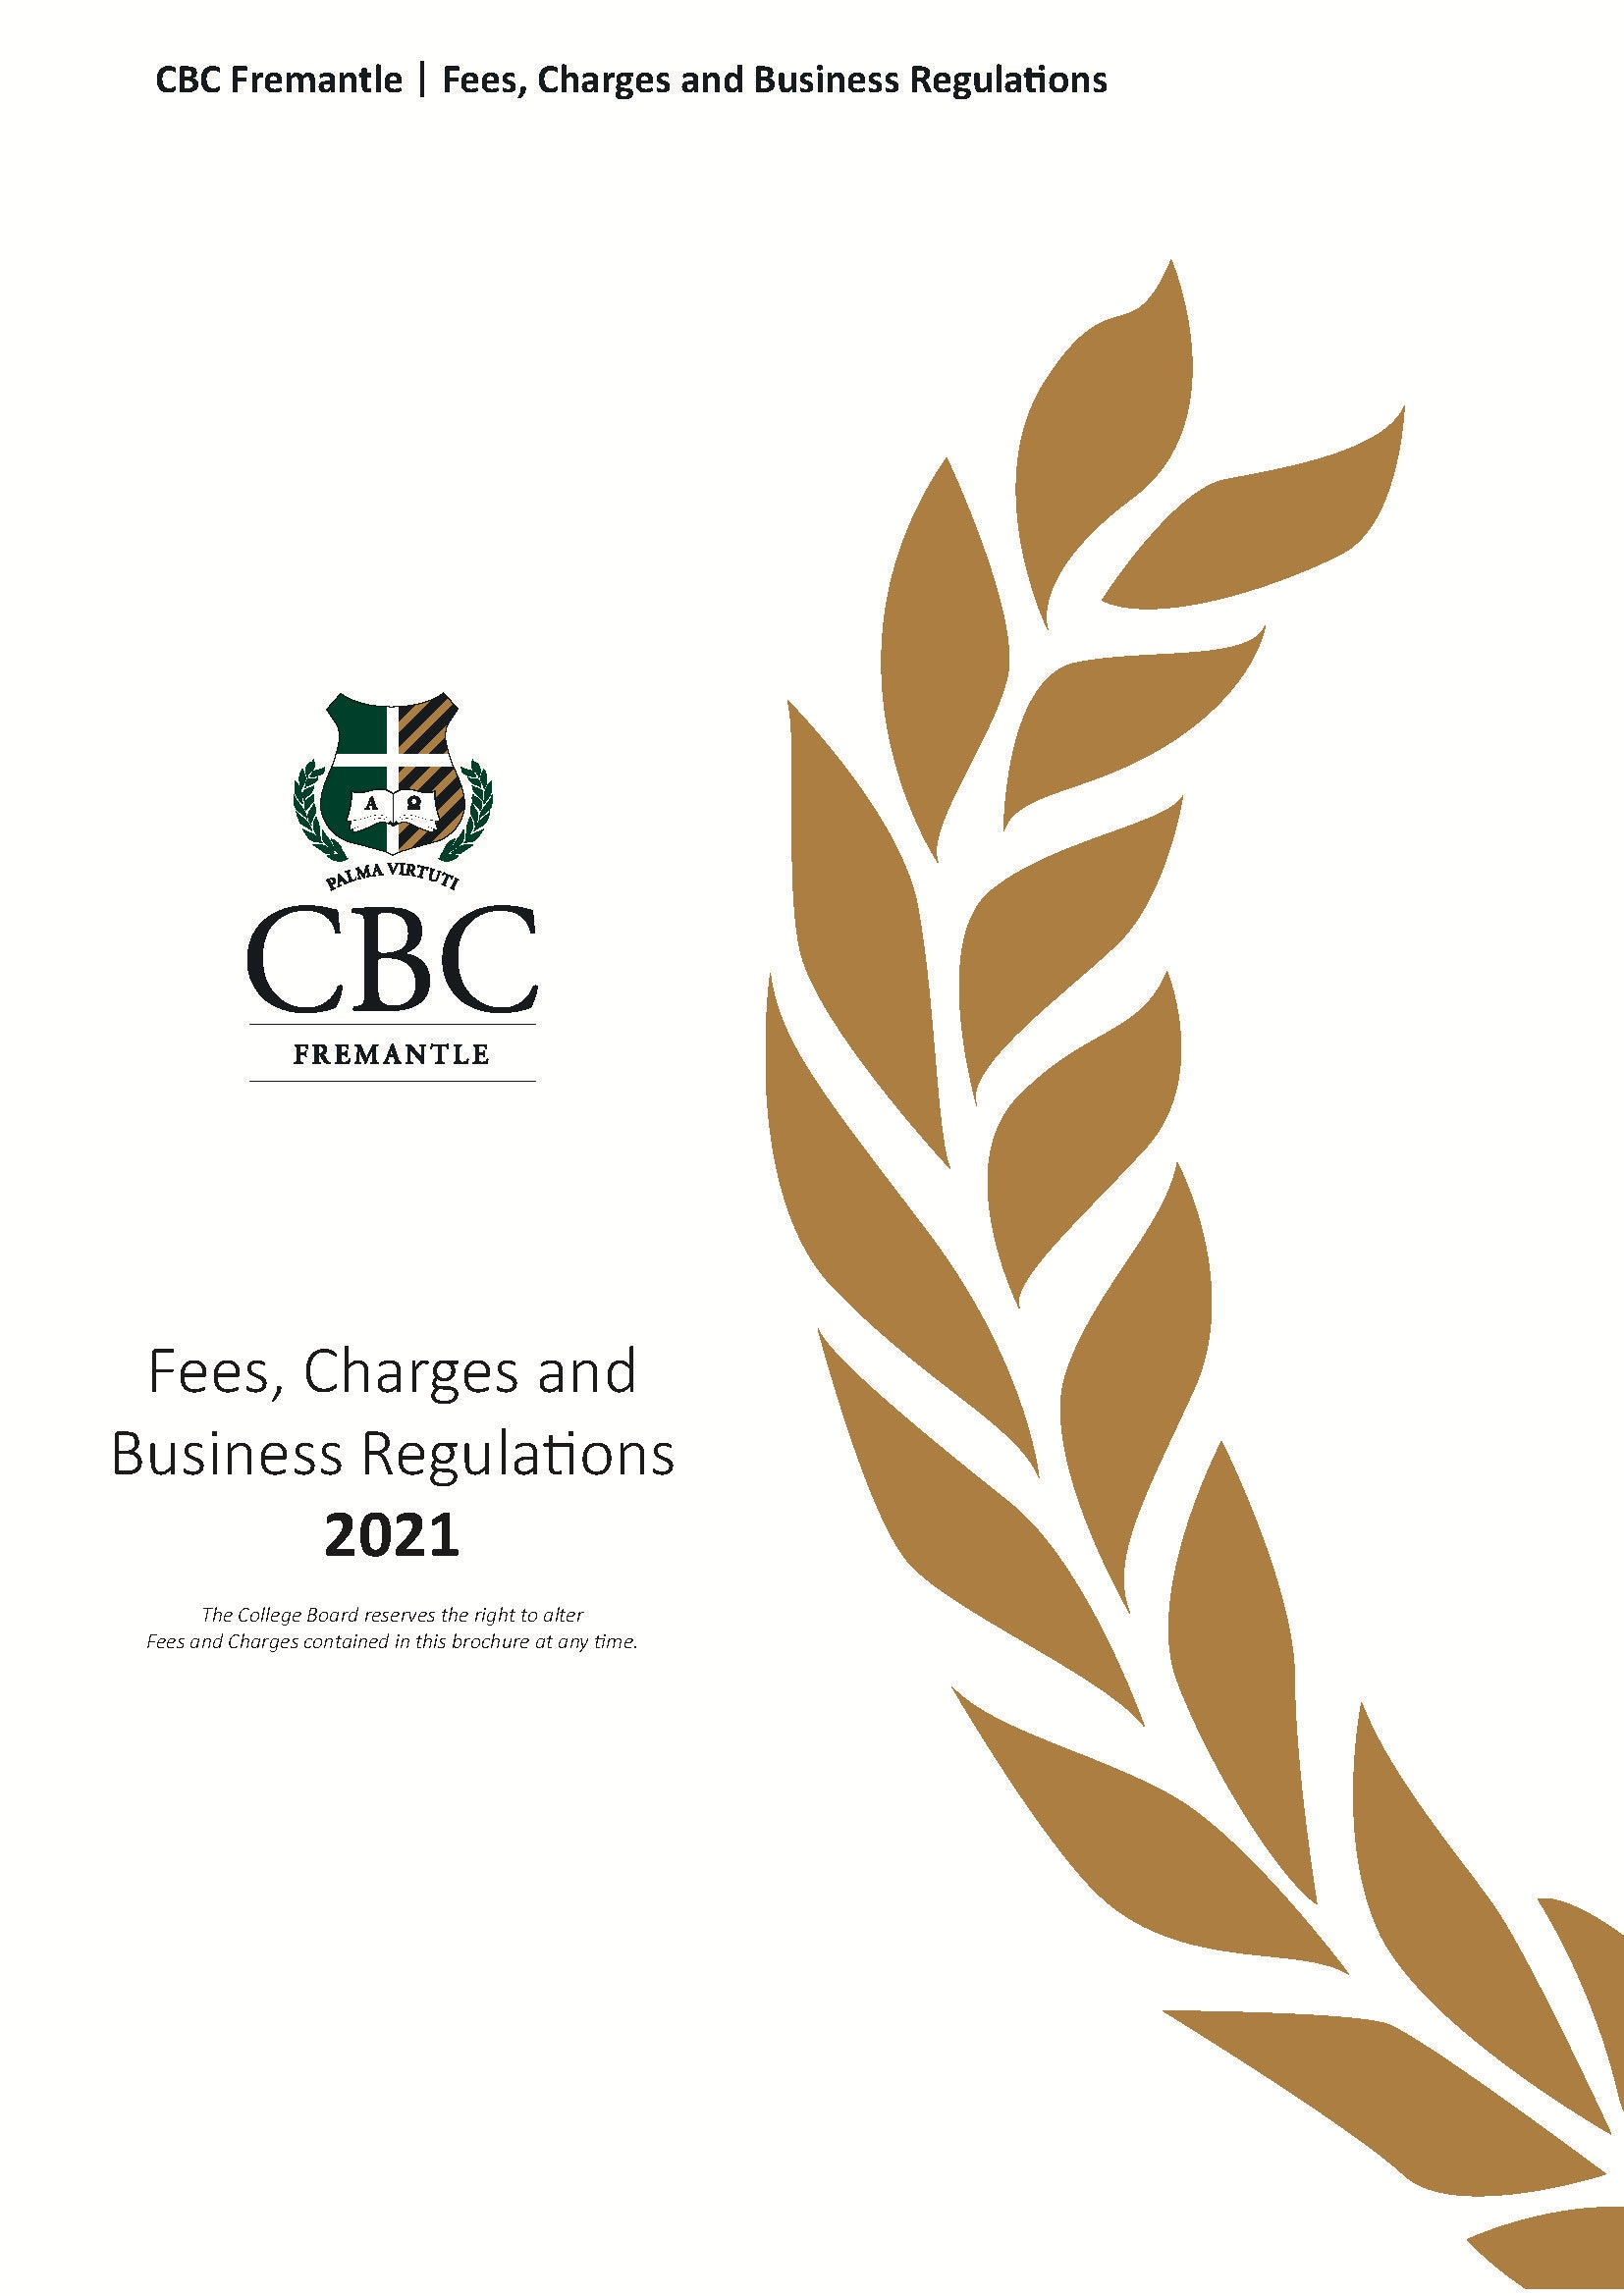 fees-charges-2021-002_page_1.jpg